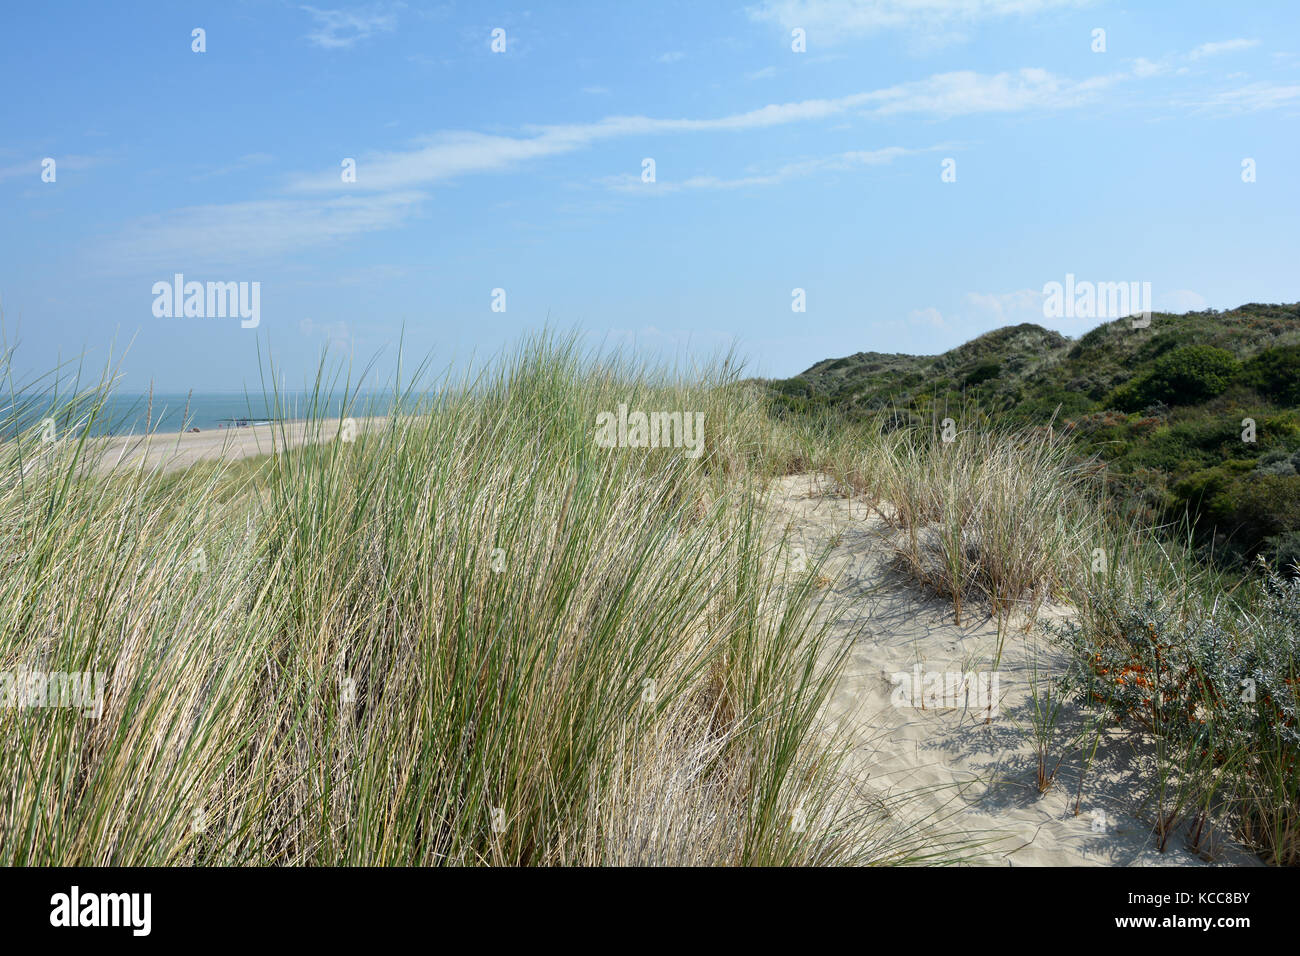 Scenery behind the sandy dunes on the North Sea coast in the Netherlands on the island Schouwen-Duiveland - Stock Image